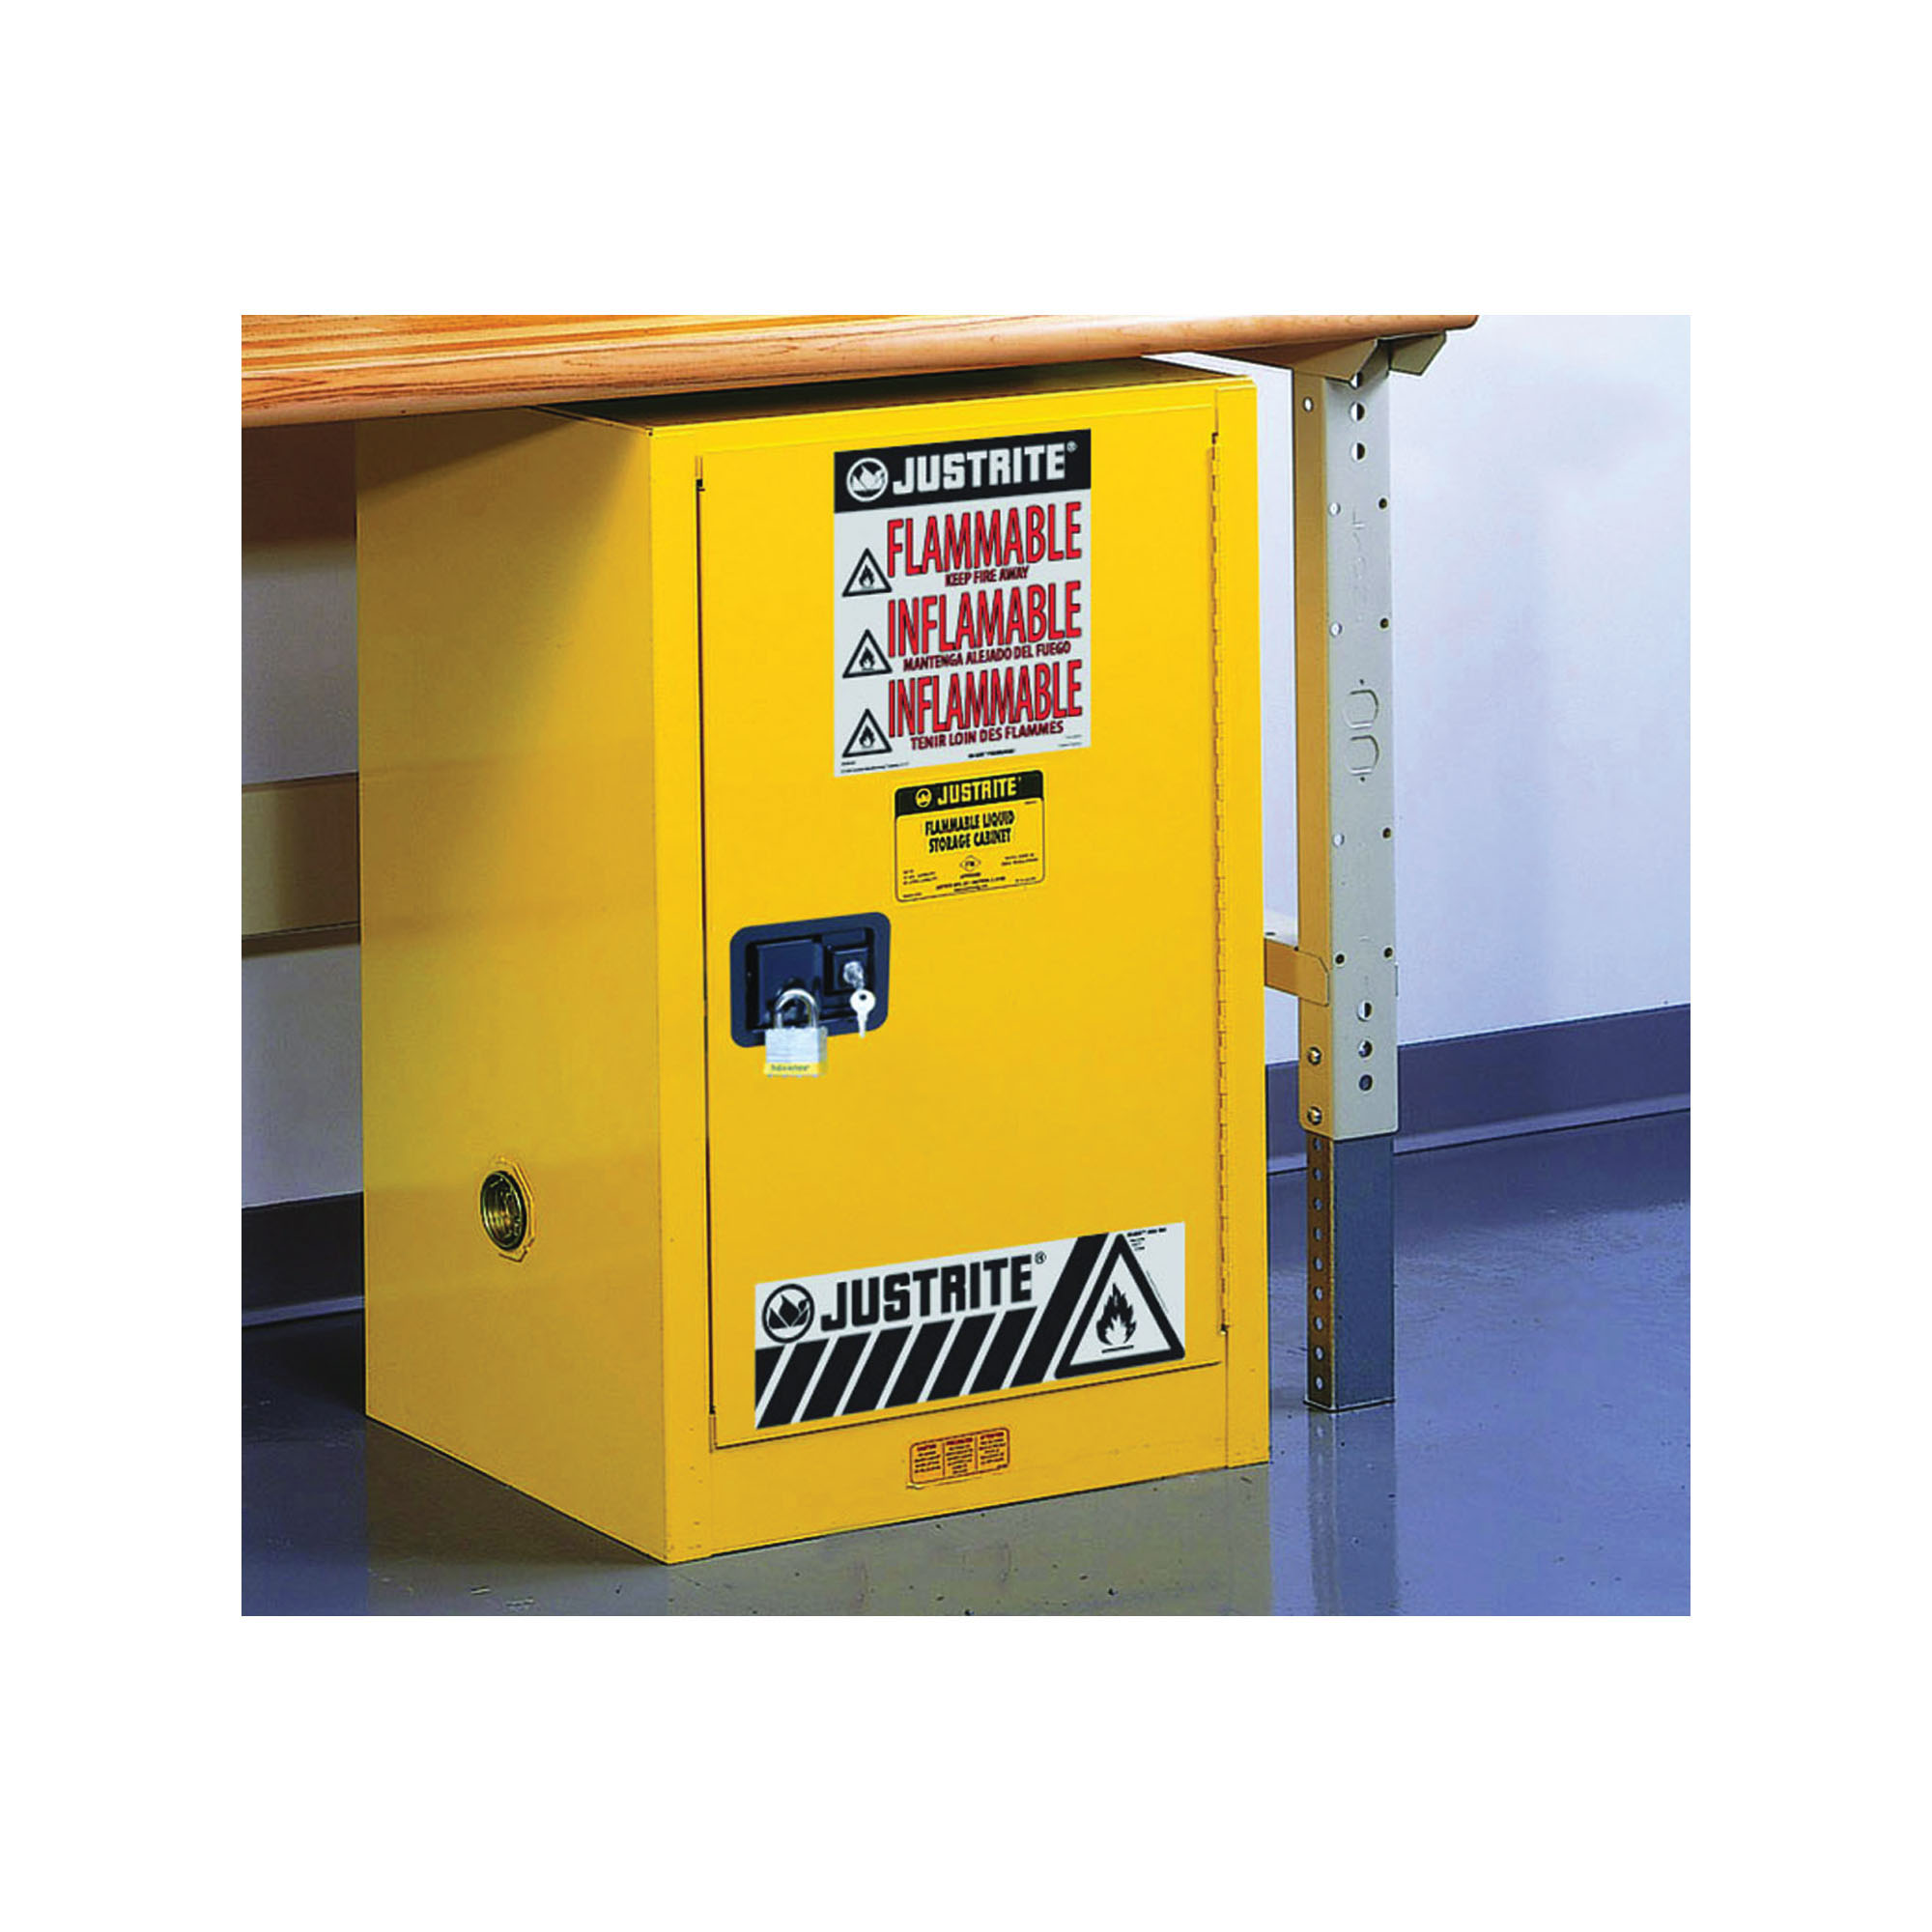 Justrite® 891220 Sure-Grip® EX Compact Flammable Safety Cabinet, 12 gal Capacity, U-Loc™ Handle, 35 in H x 23-1/4 in W x 18 in D, Self-Close Door, 1 Doors, 1 Shelves, Cold Rolled Steel, Yellow